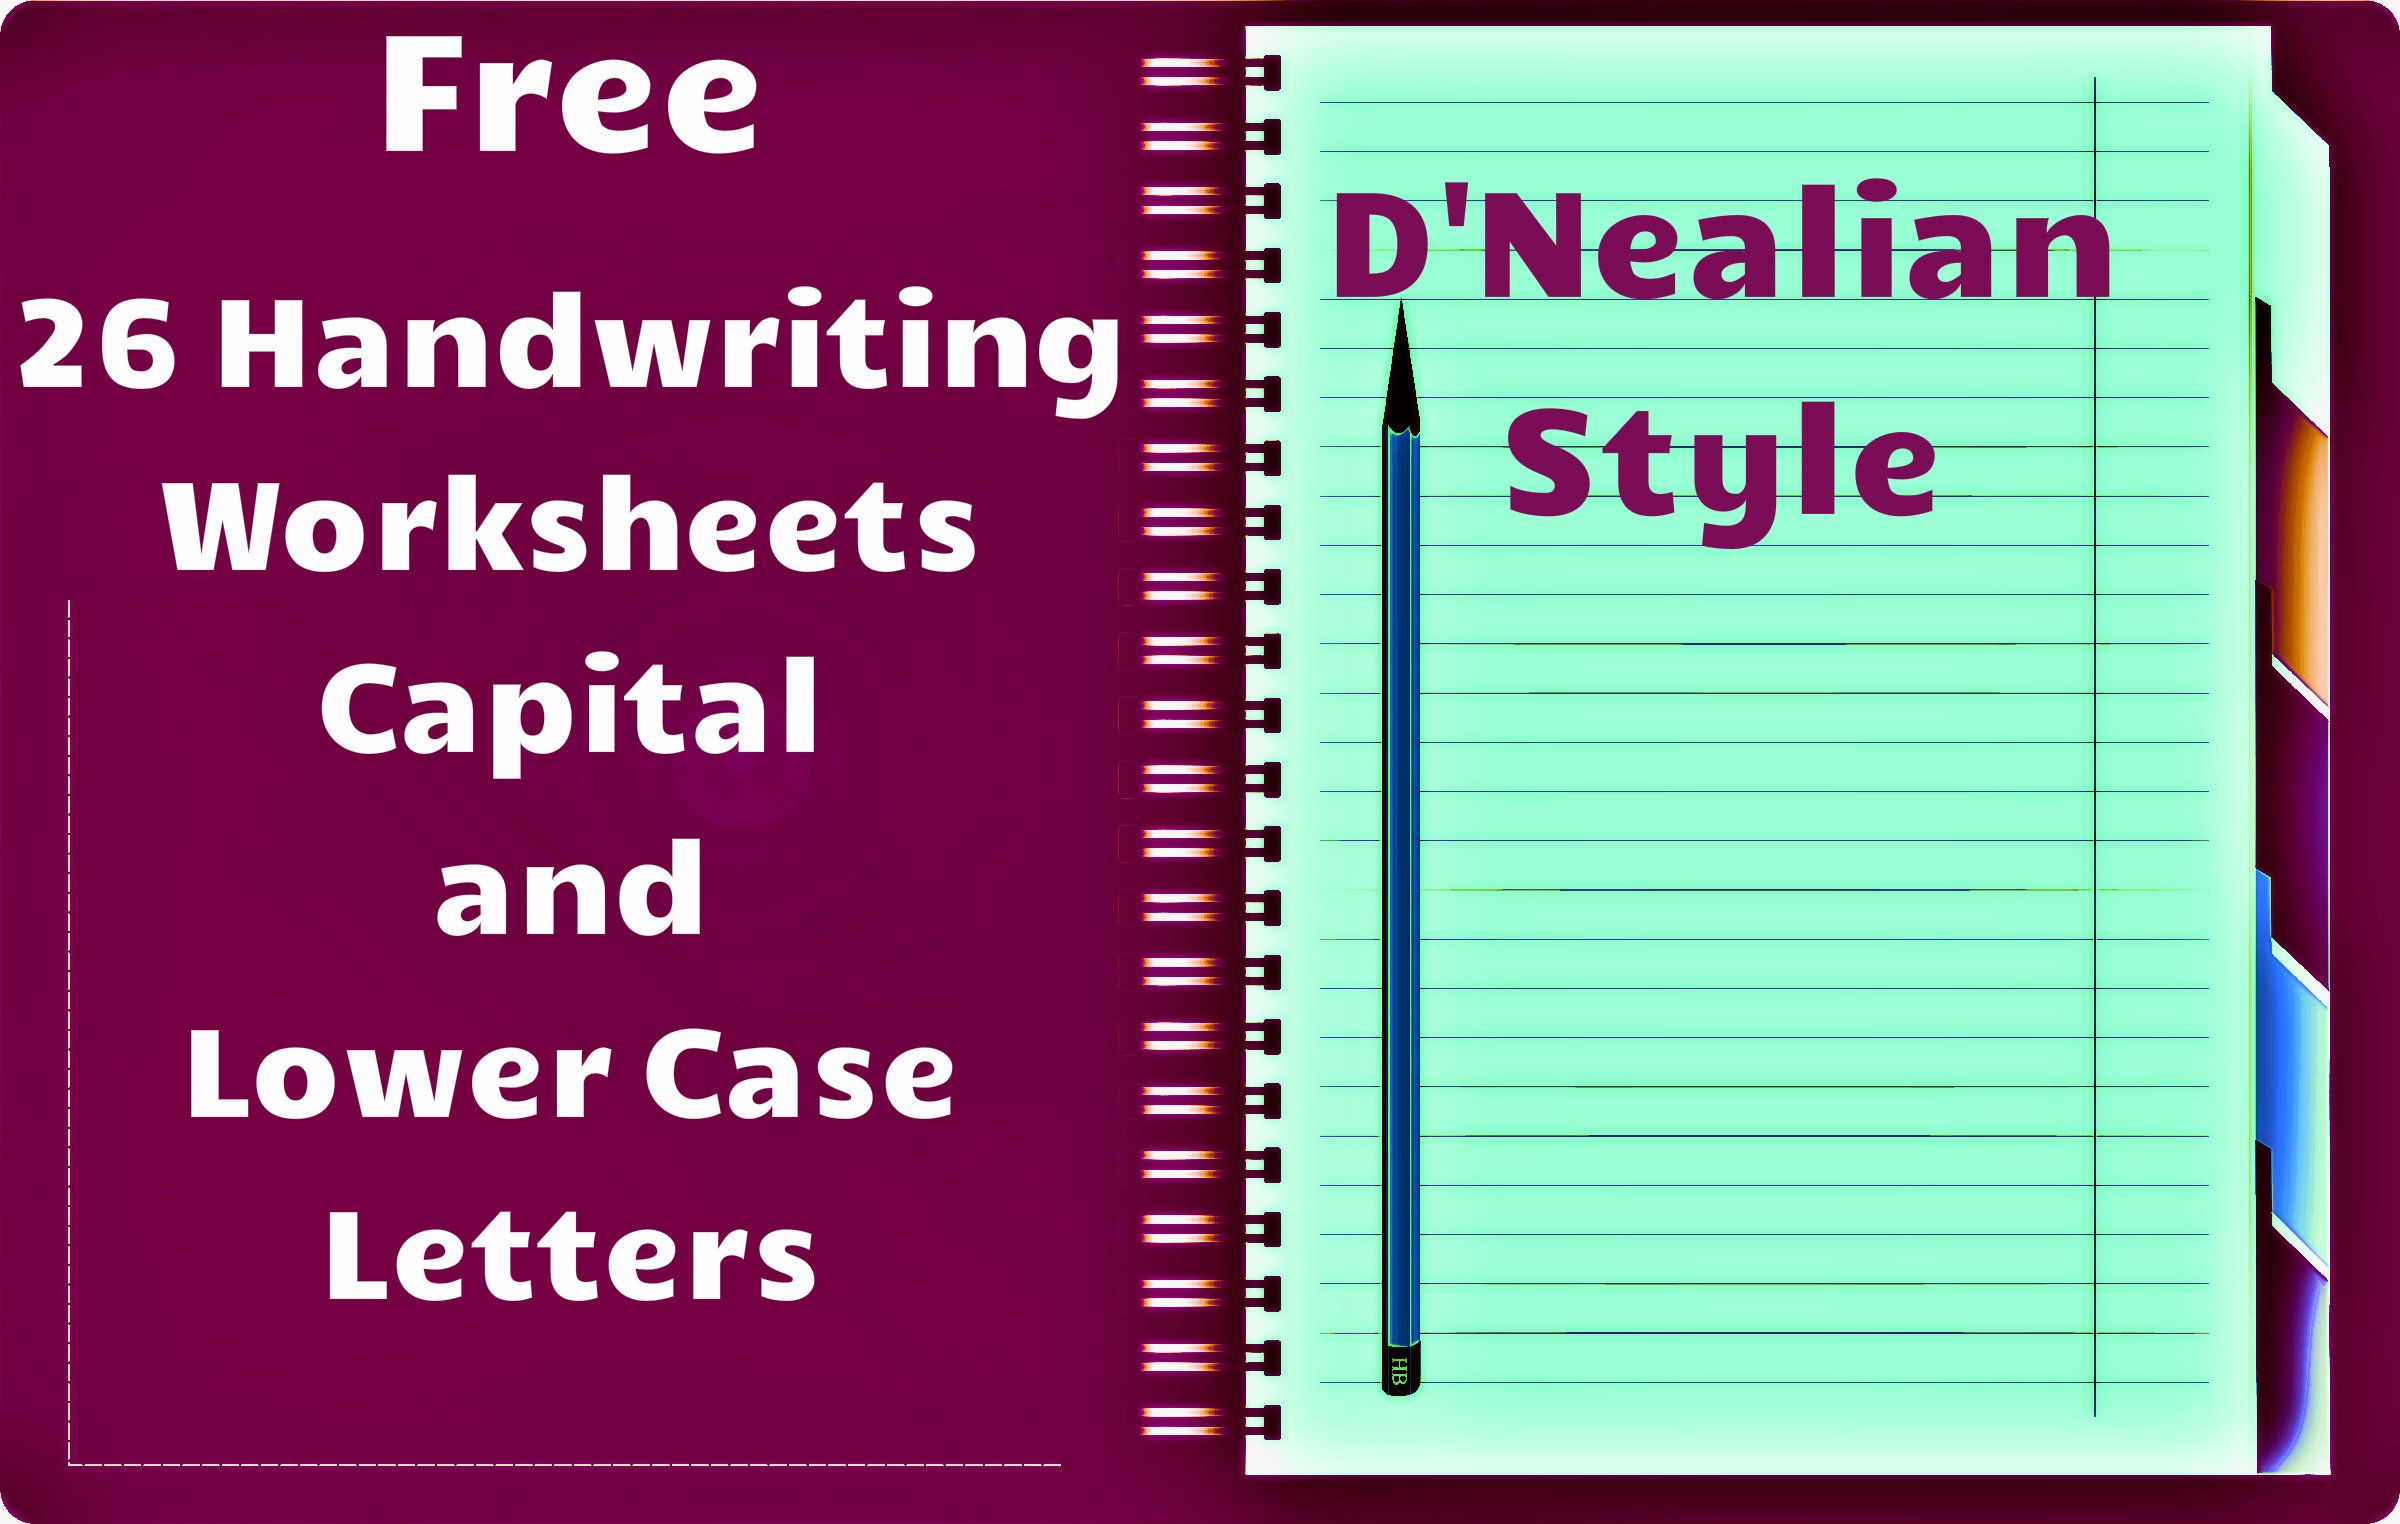 Printables D Nealian Handwriting Worksheets Free 1000 images about dnealian handwriting on pinterest worksheets free and practice w